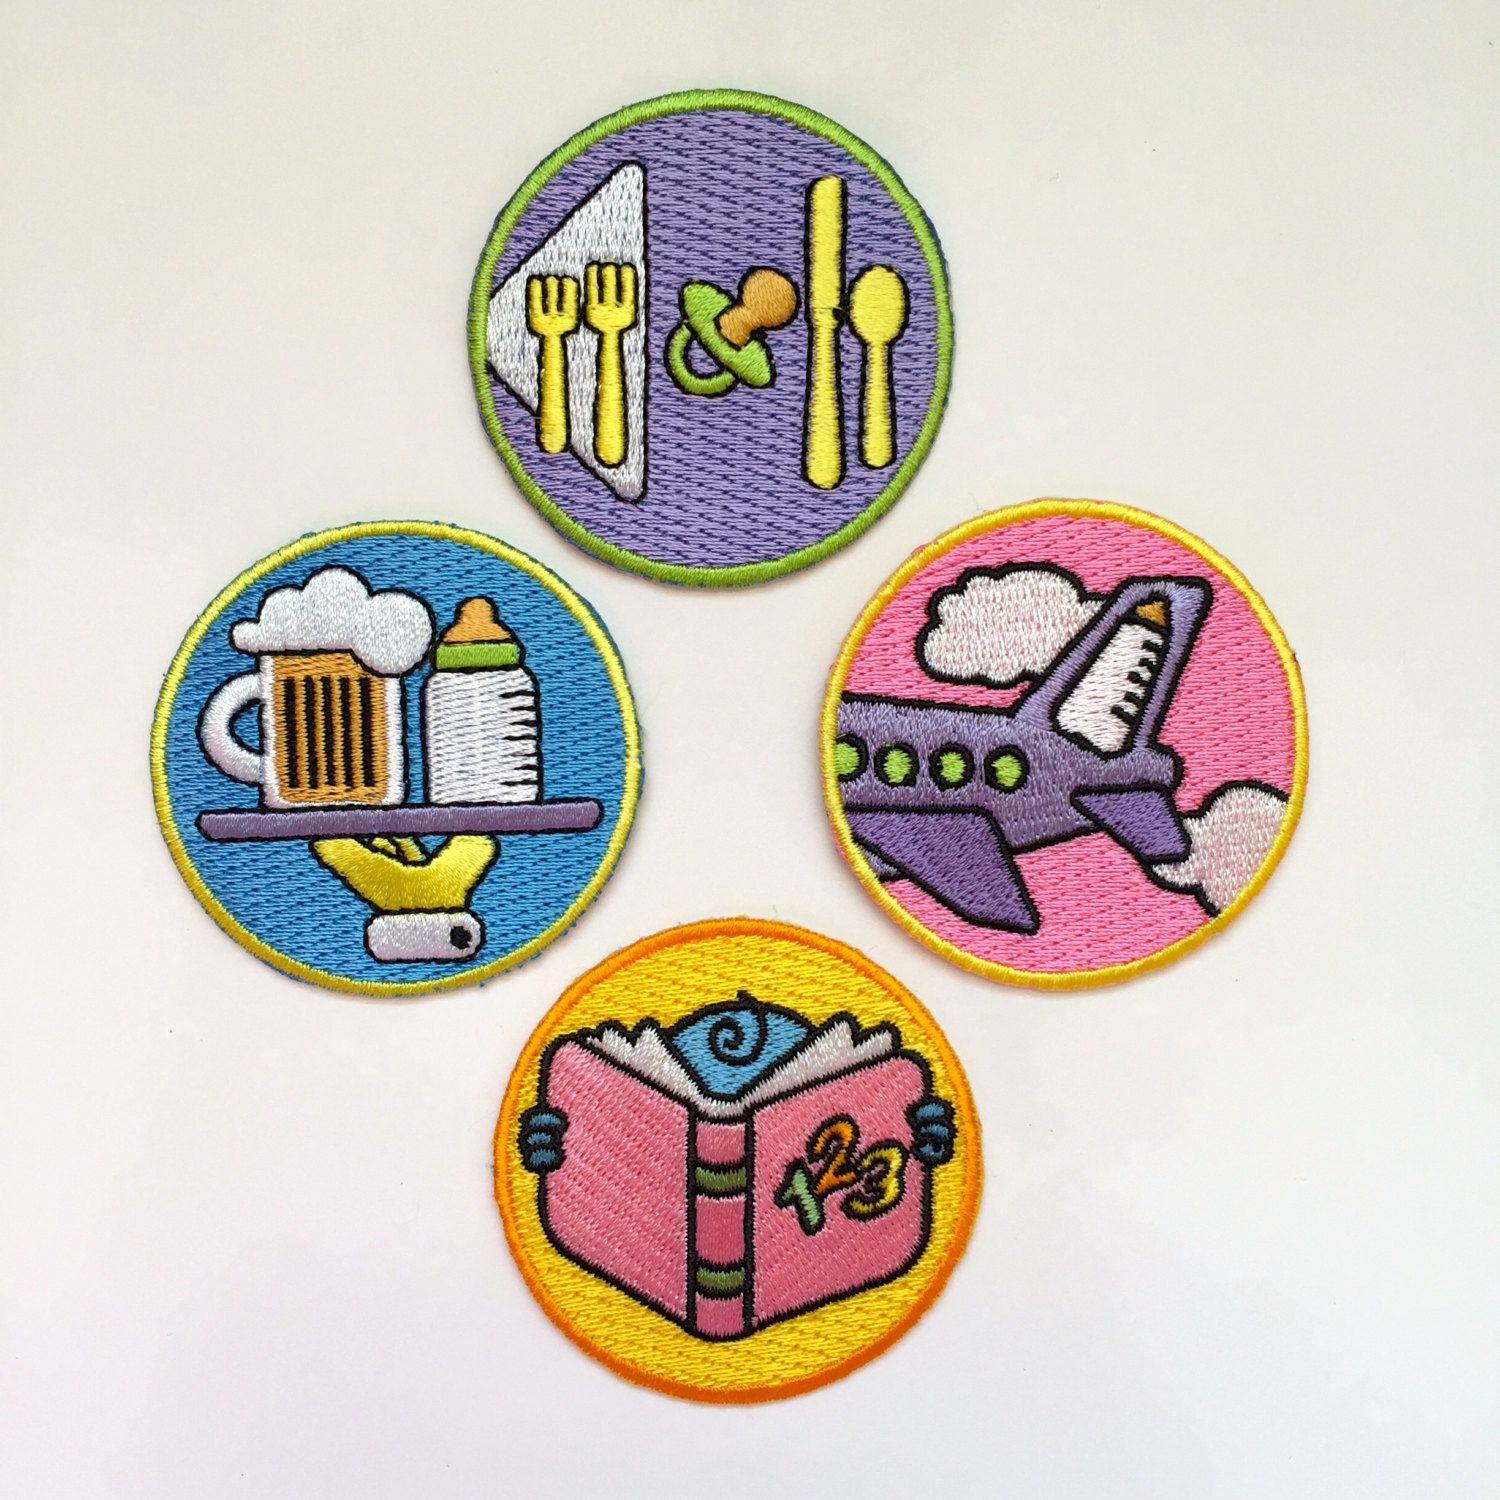 Complete Set Of Merit Badges